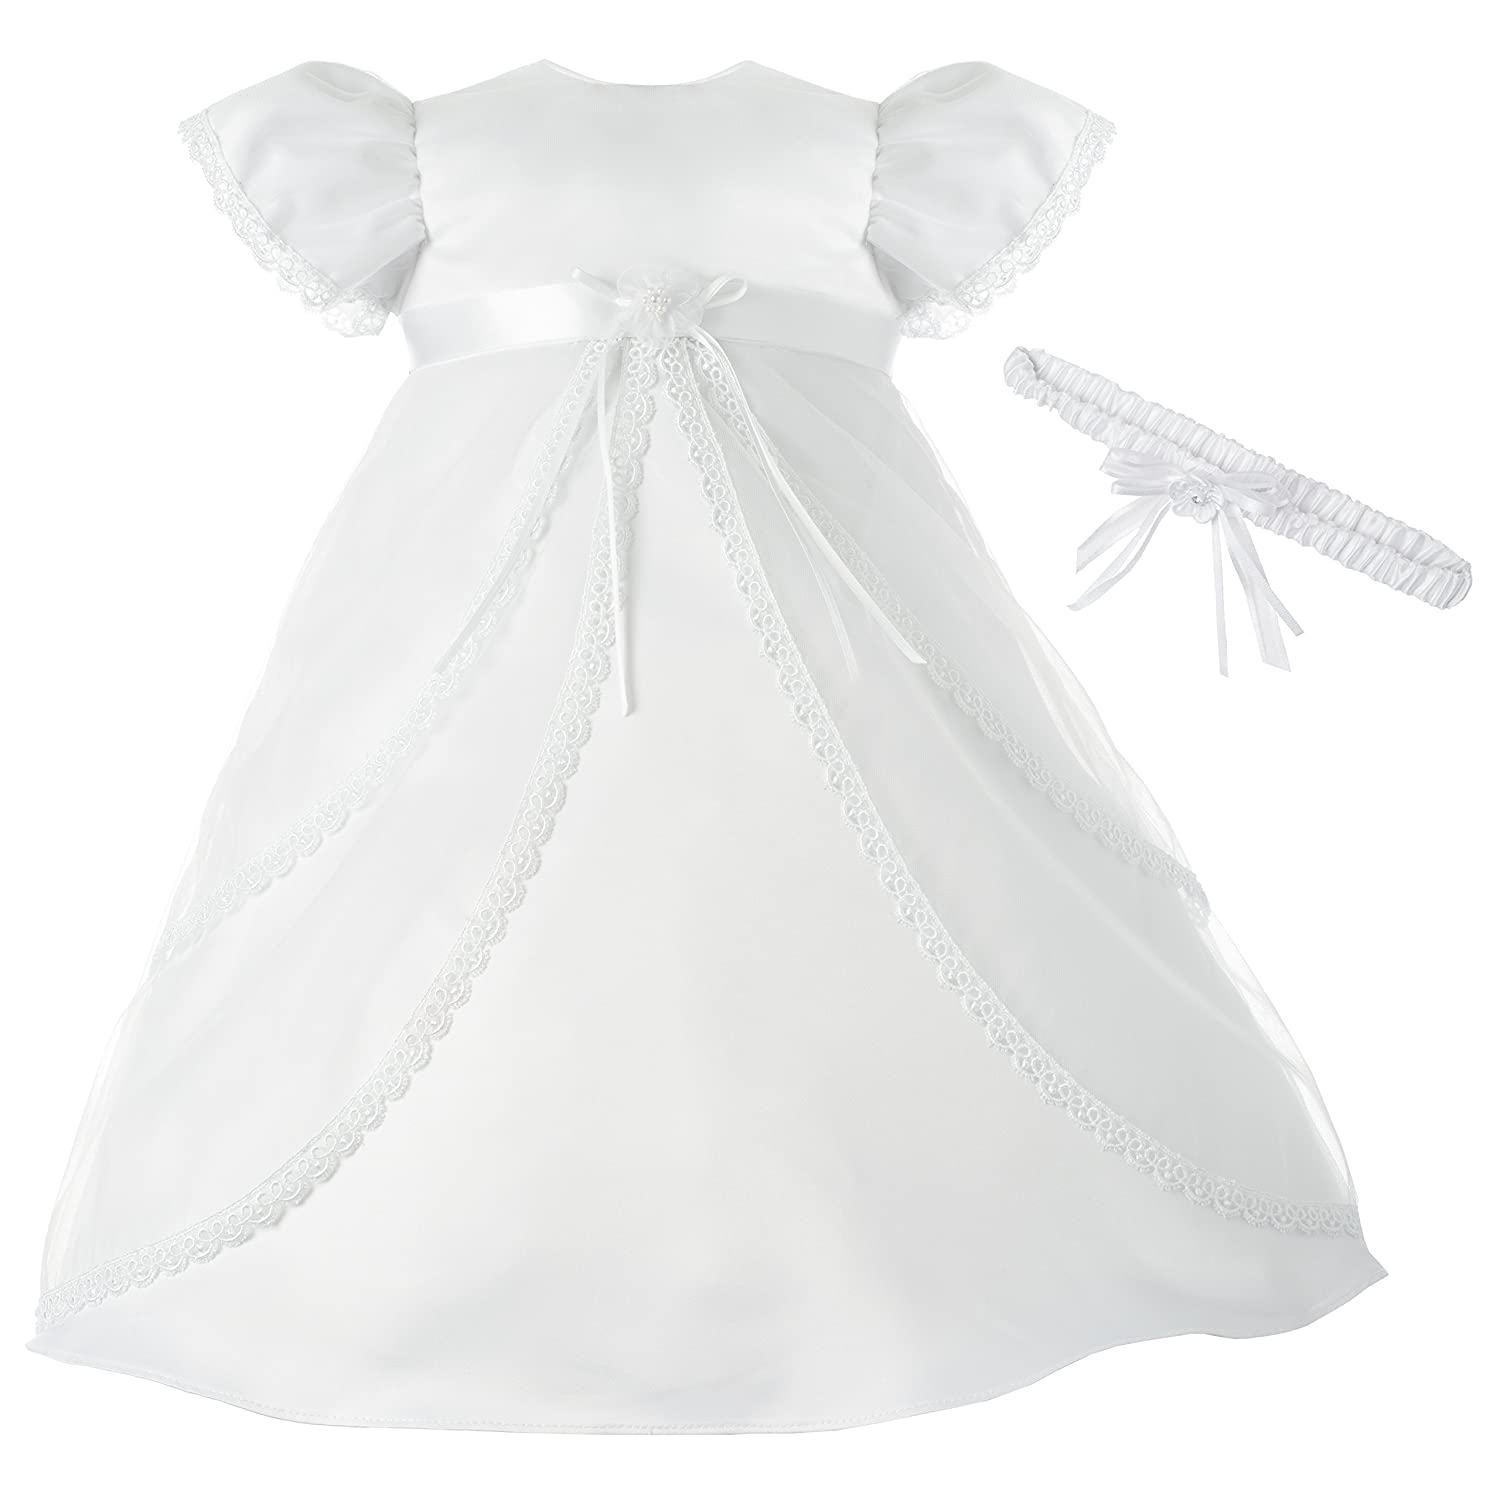 Lauren Madison Baby-Girls Newborn Sheer Over Satin Dress Gown Outfit 1362